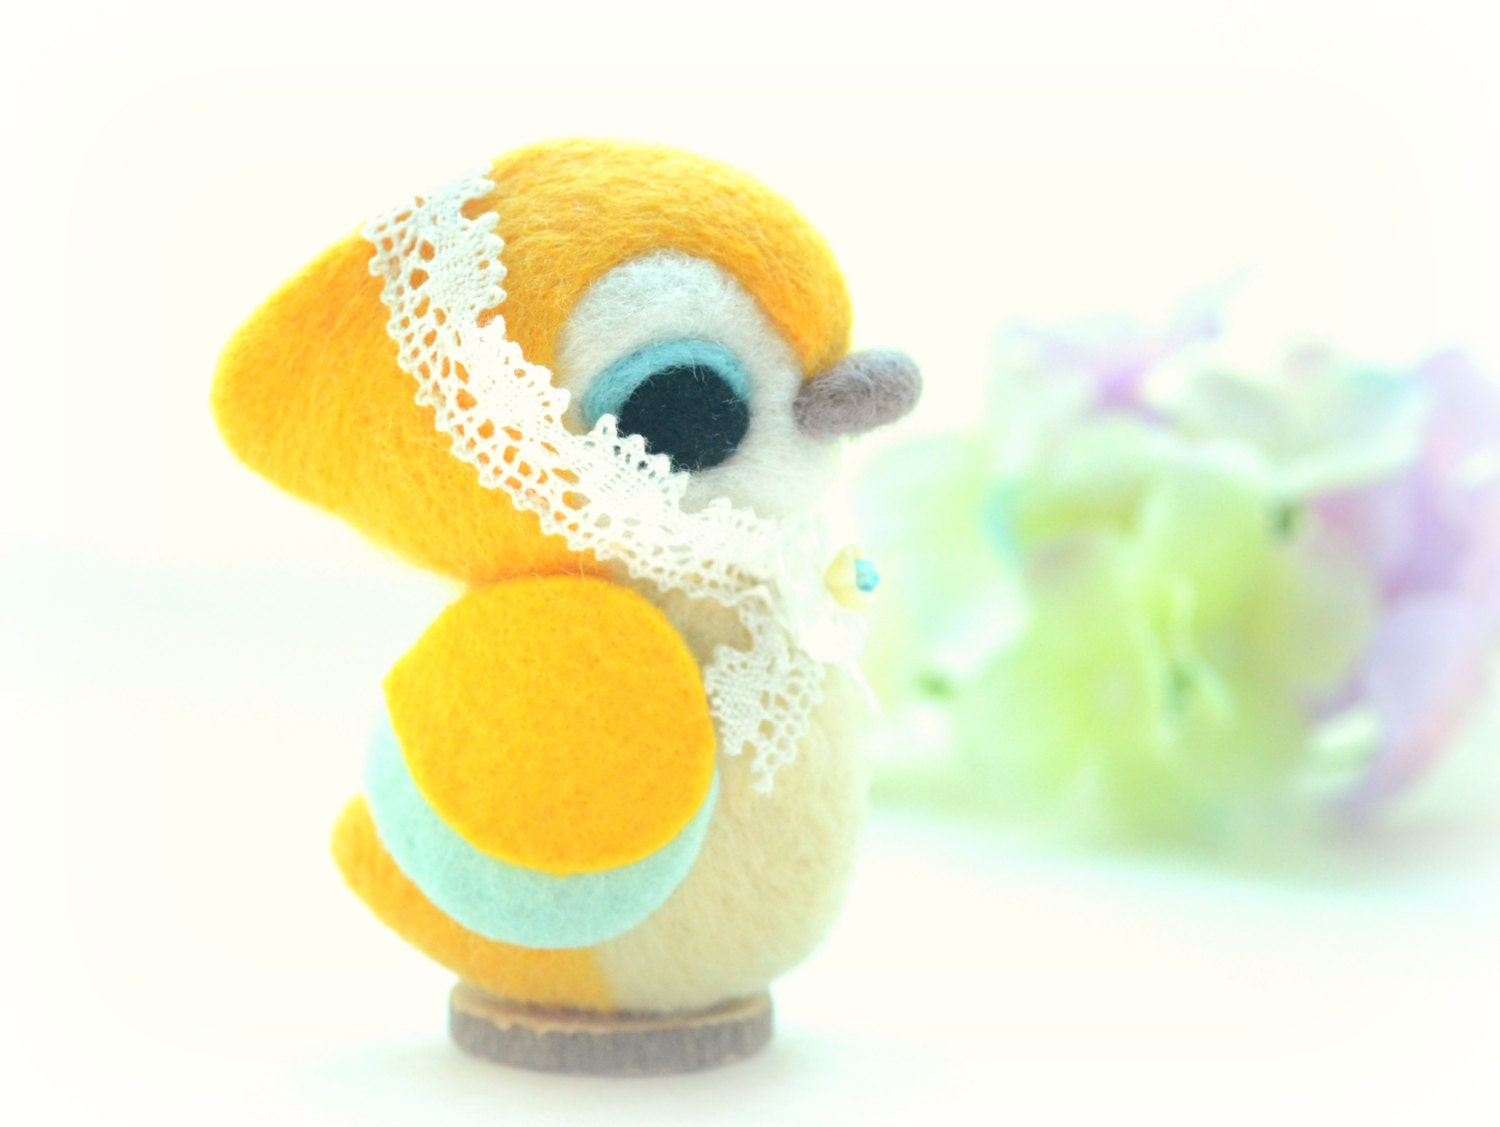 Handmade soft sculpture bird doll, needle felt bird, nursery decor toy, home decor ornament, yellow & blue, gift under 25, stocking stuffer - NozomiCrafts